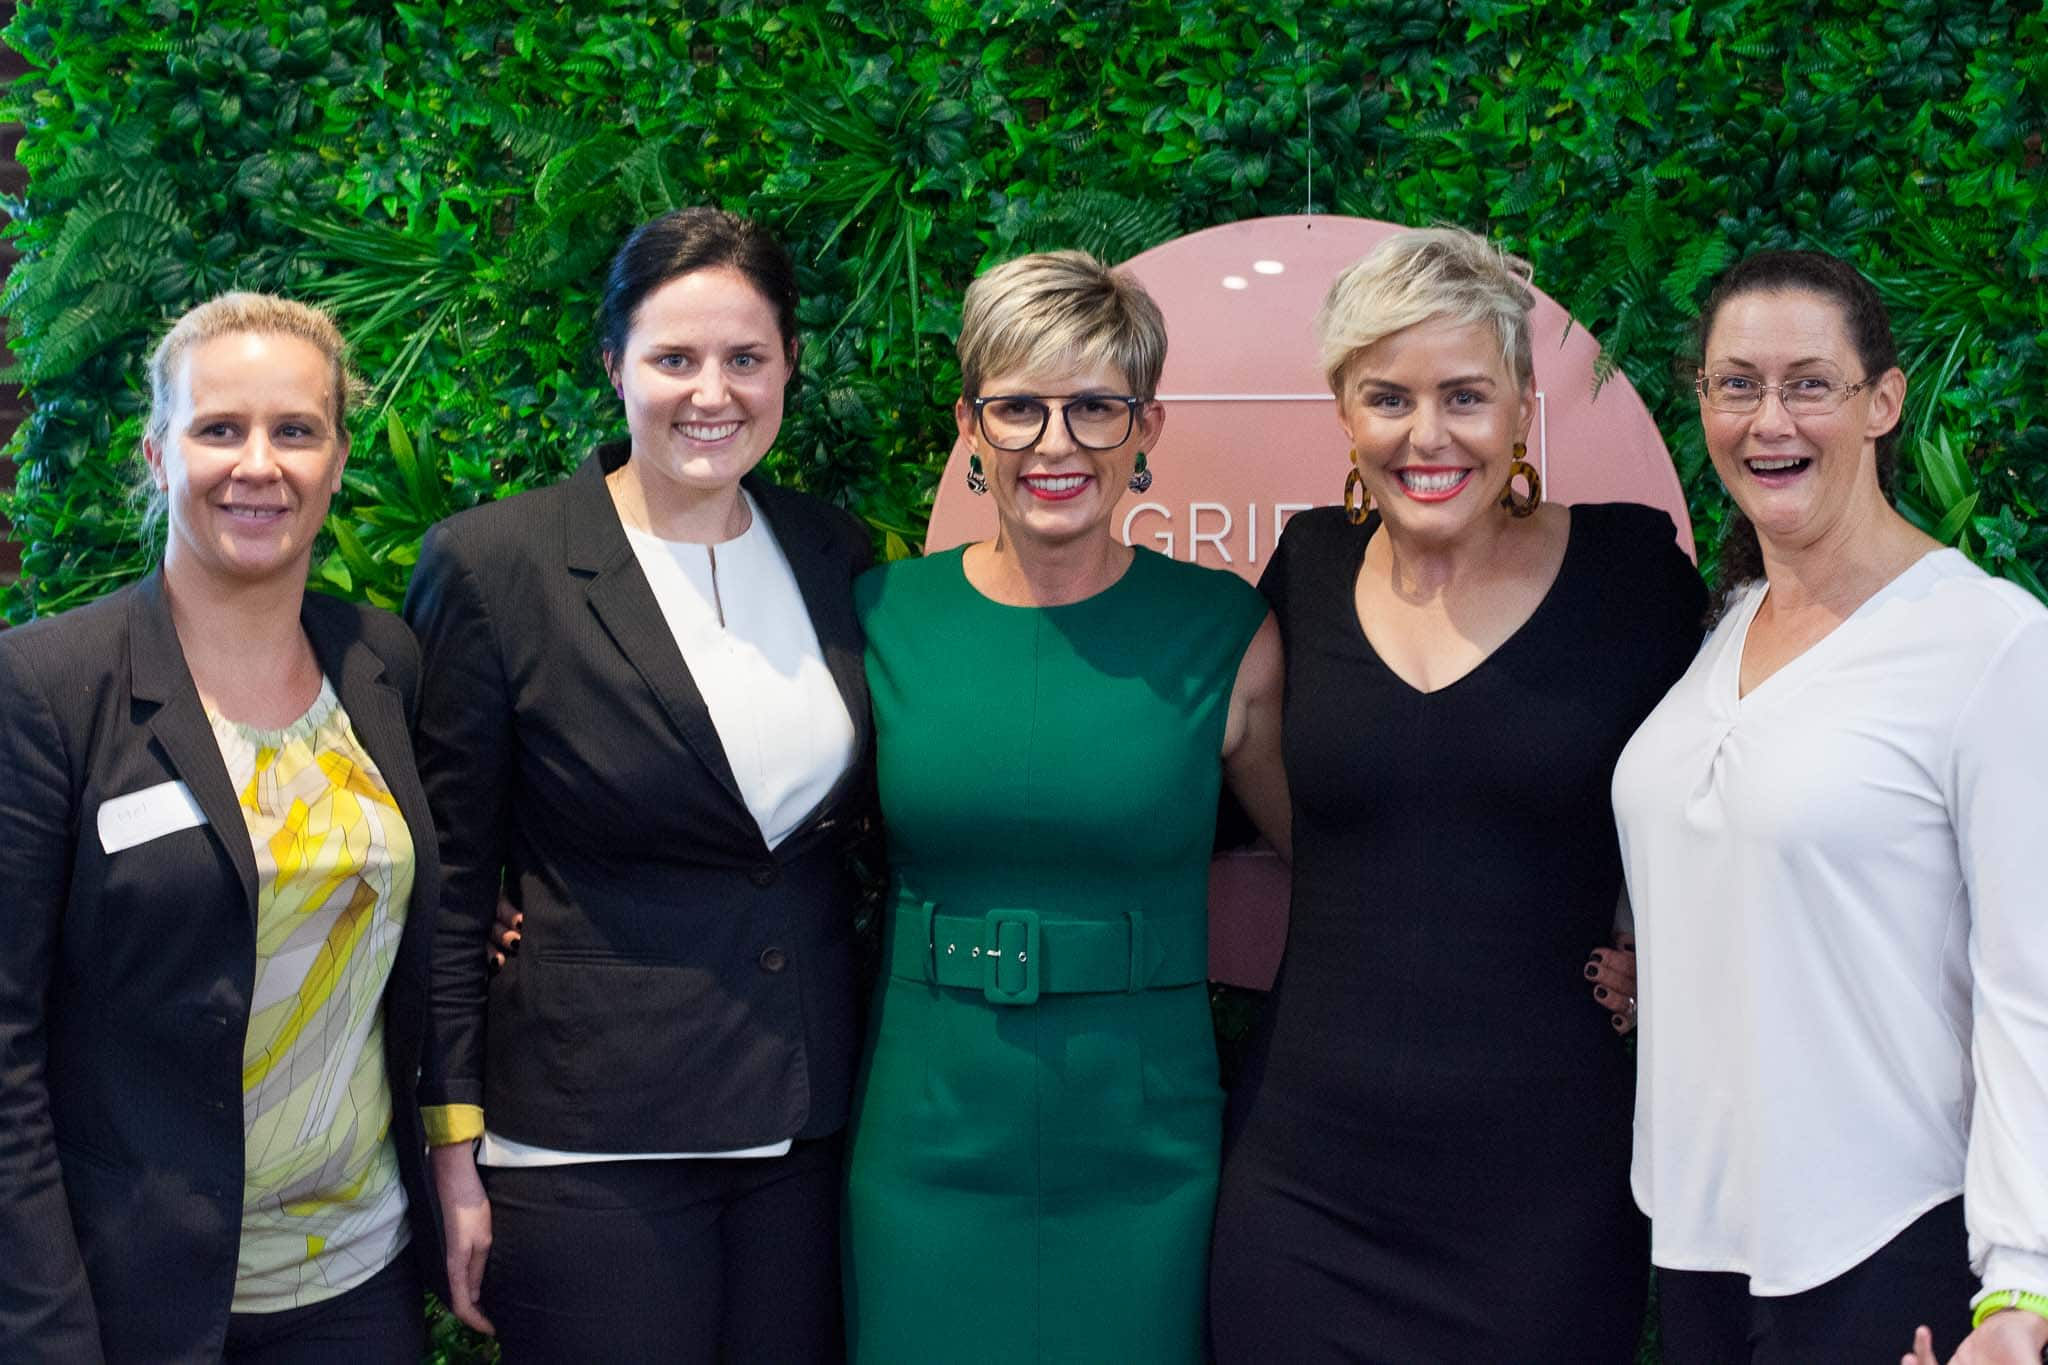 GWIB Workshop with Shekan - https://www.griffithwomeninbusiness.org/wp-content/uploads/2019/05/Griffith-Women-in-Business-GWIB-Workshop-SheKan-WEB-7227.jpg